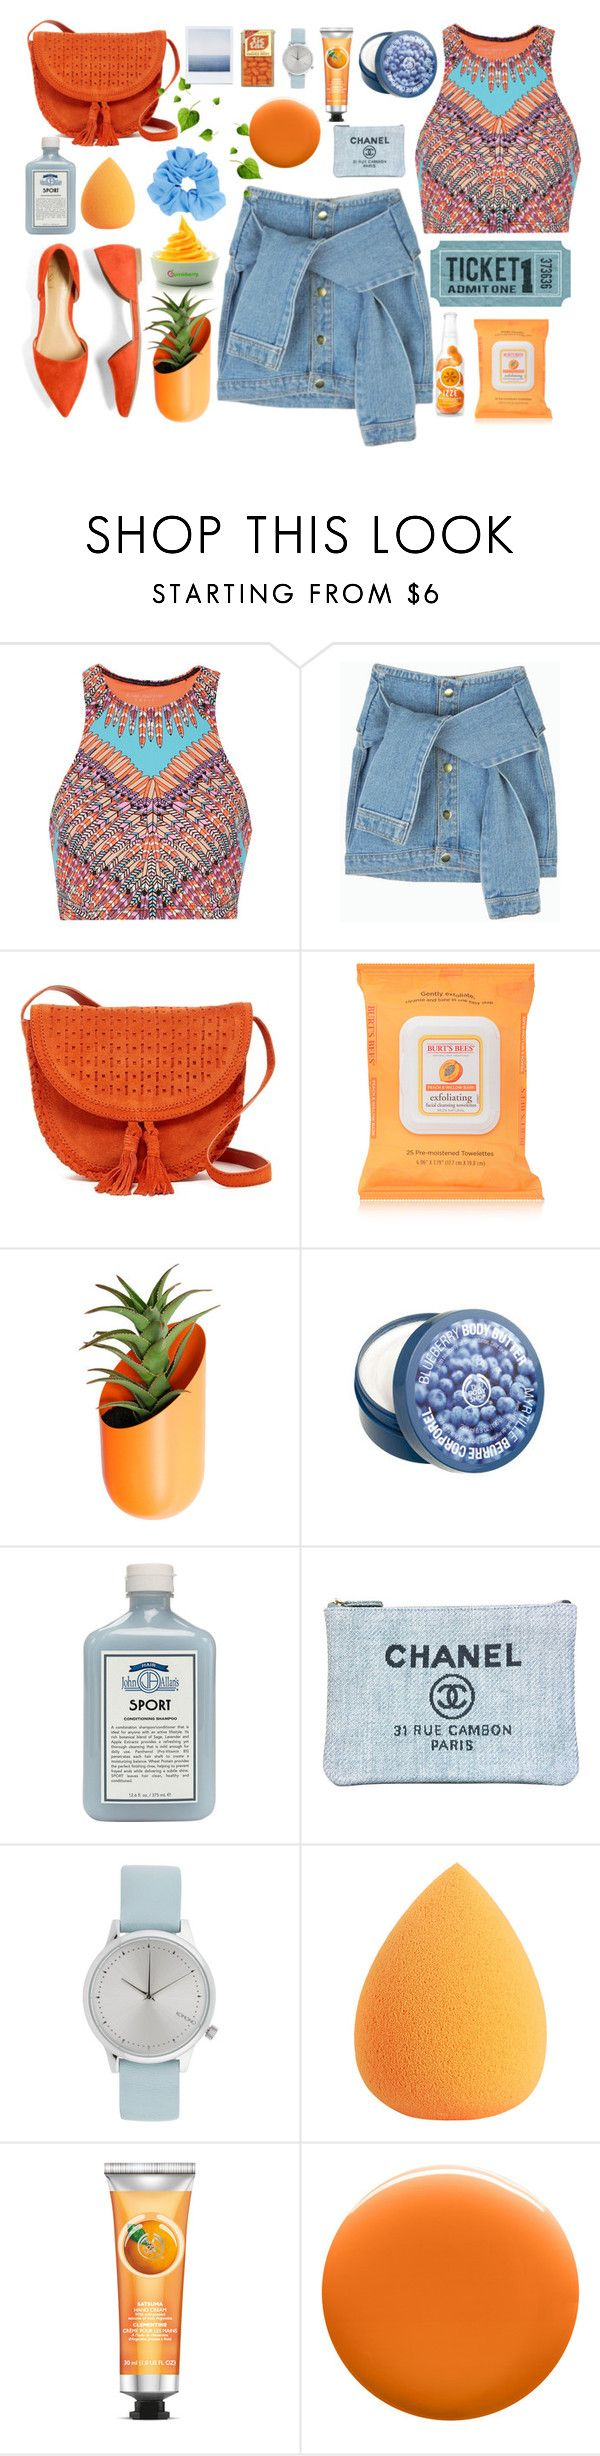 """Plus one"" by susy-v ❤ liked on Polyvore featuring Mara Hoffman, Shiraleah, MANGO, Burt's Bees, Wallter, The Body Shop, John Allan's, Chanel, Komono and Uslu Airlines"